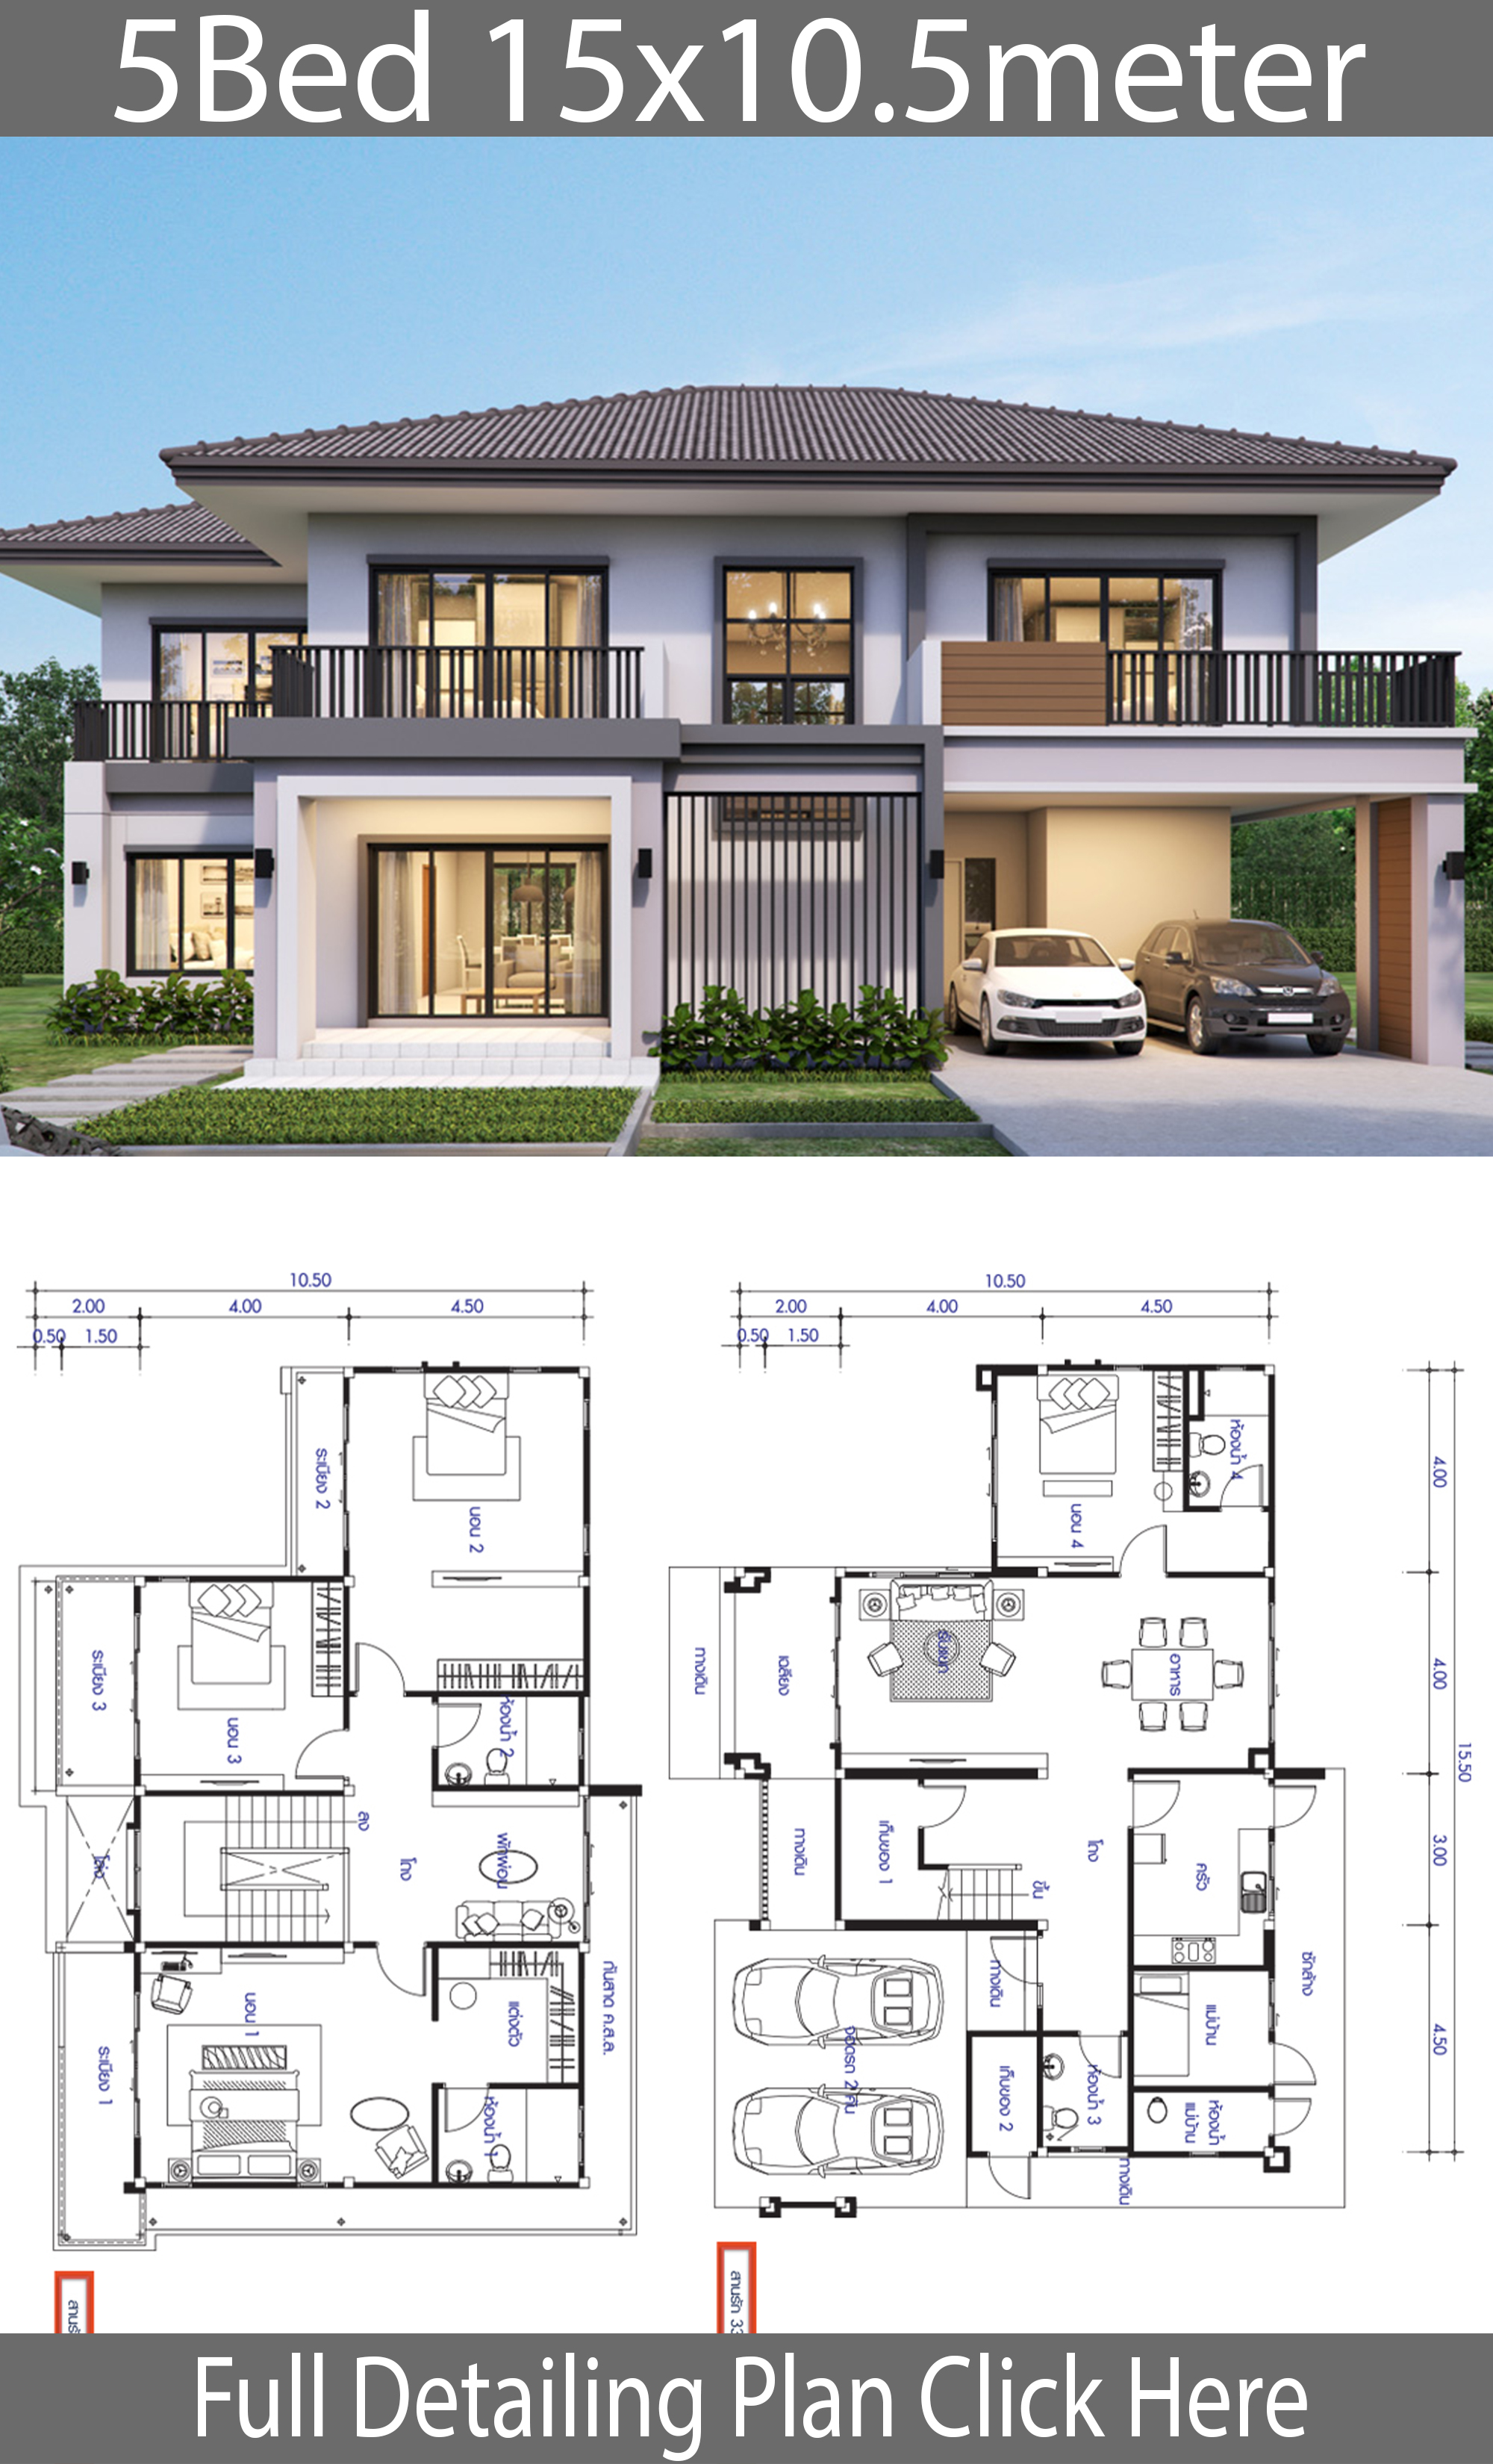 House design plan 15.5x10.5m with 5 bedrooms - House Plans 3D